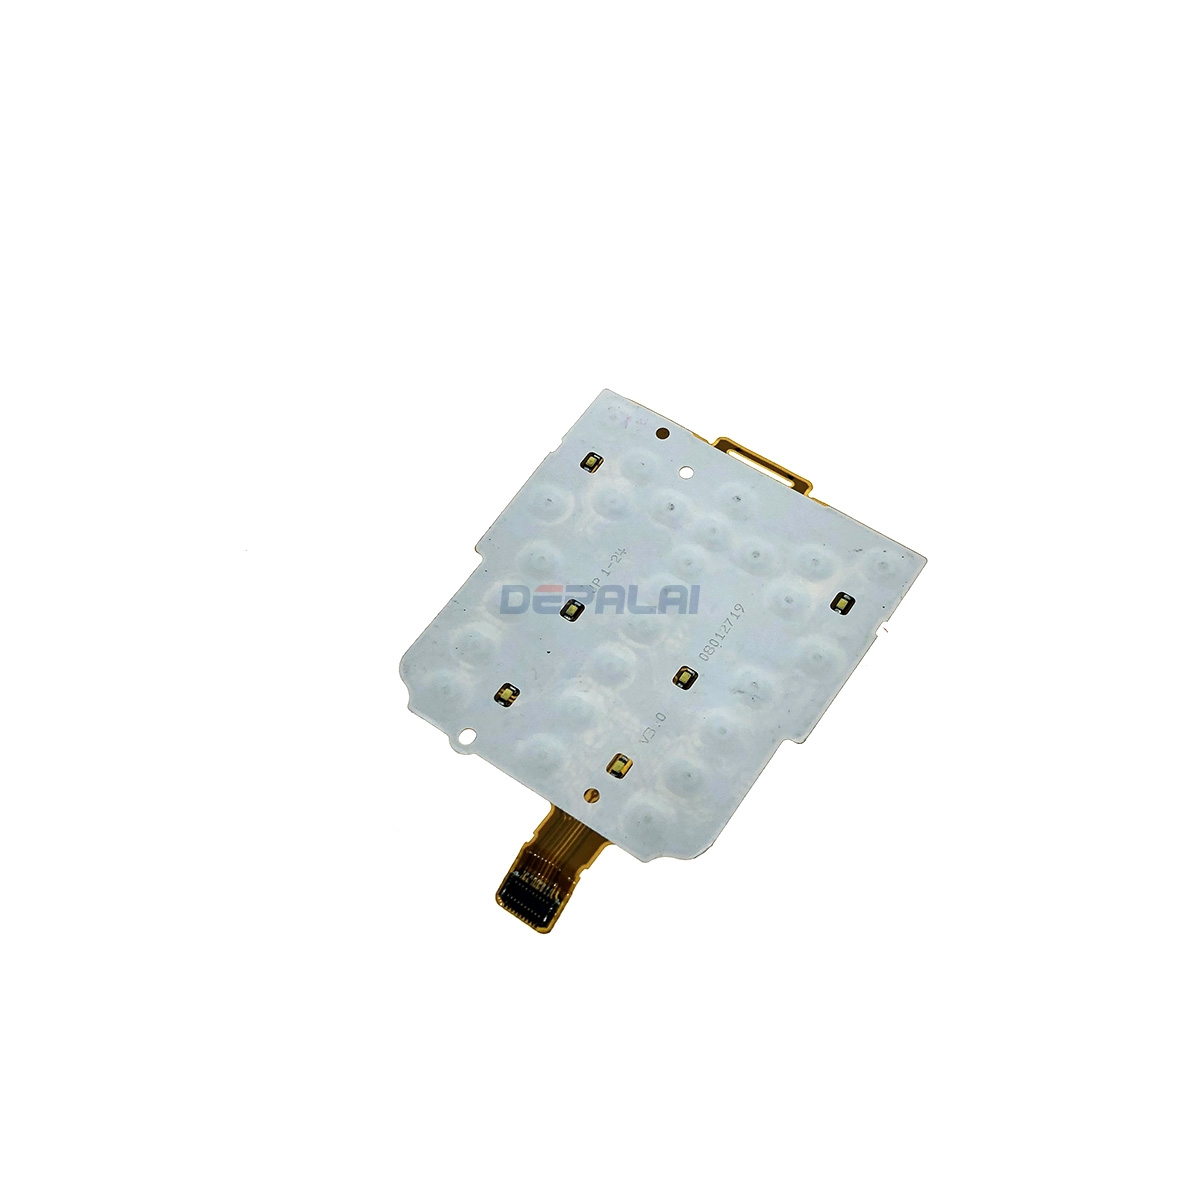 Mobile Phone Flex Cables Replacement Keypad Keyboard Joystick Membrane Flex Cable For Nokia E51